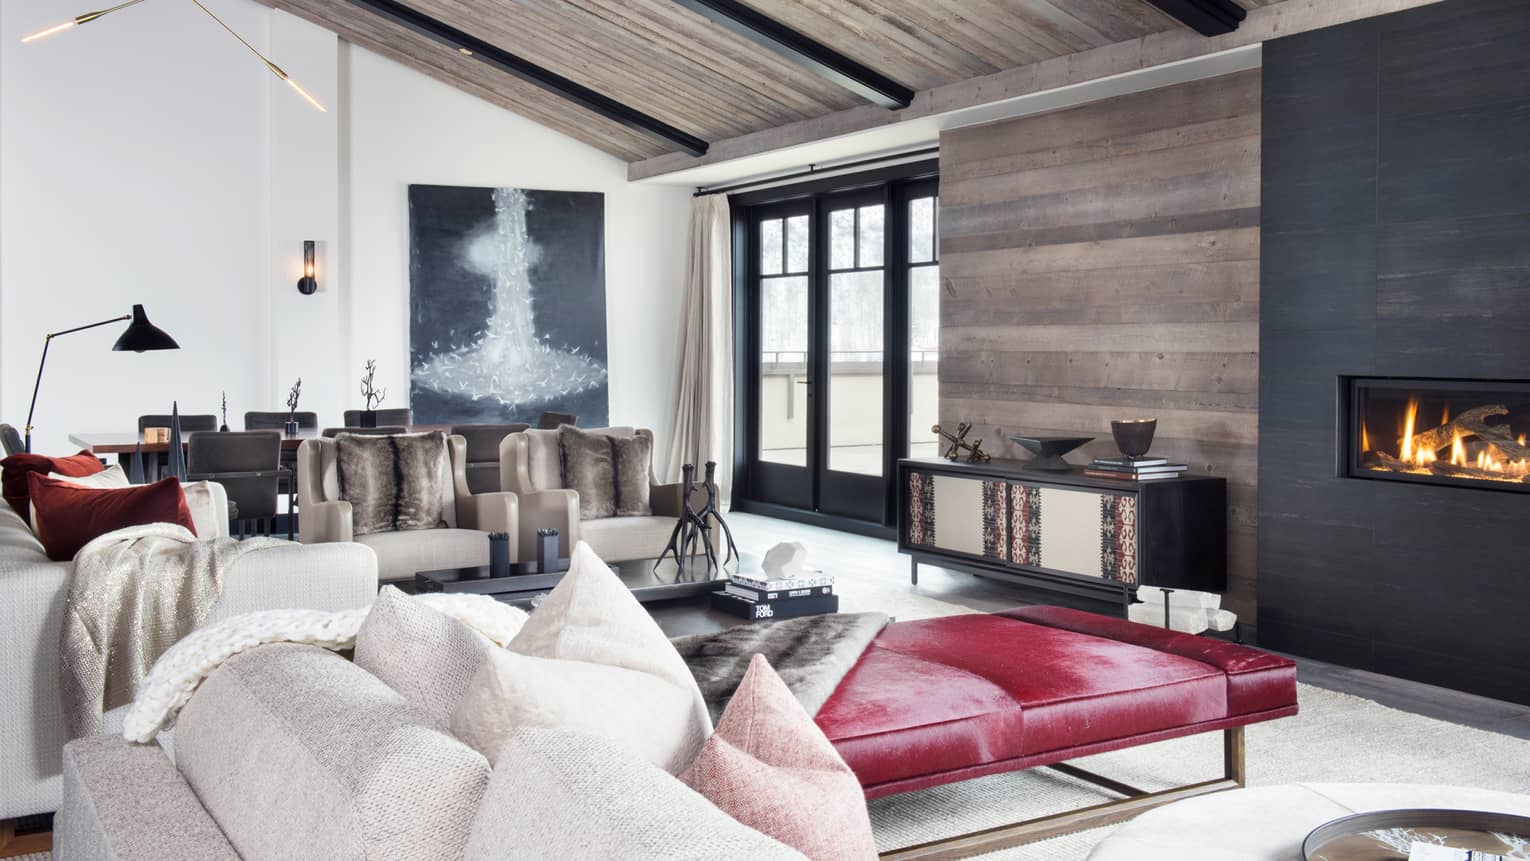 Modern four-bedroom designer residence with white decor, sloped ceilings, red leather chaise, fireplace